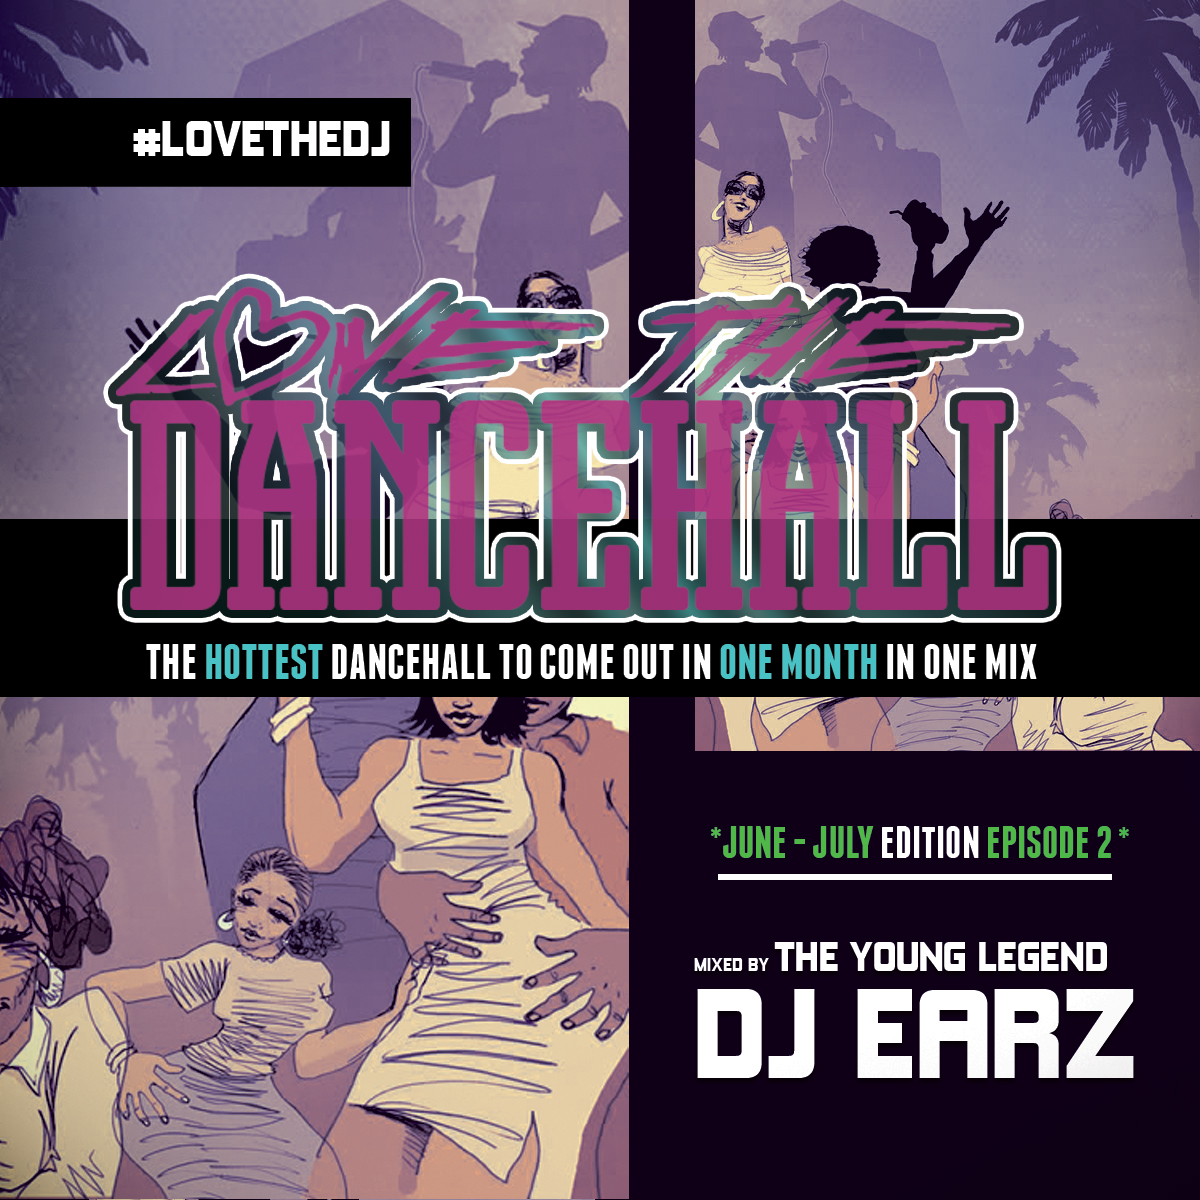 DJ EARZ – LOVE THE DANCEHALL (JUNE/JULY EDITION) EPISODE 2